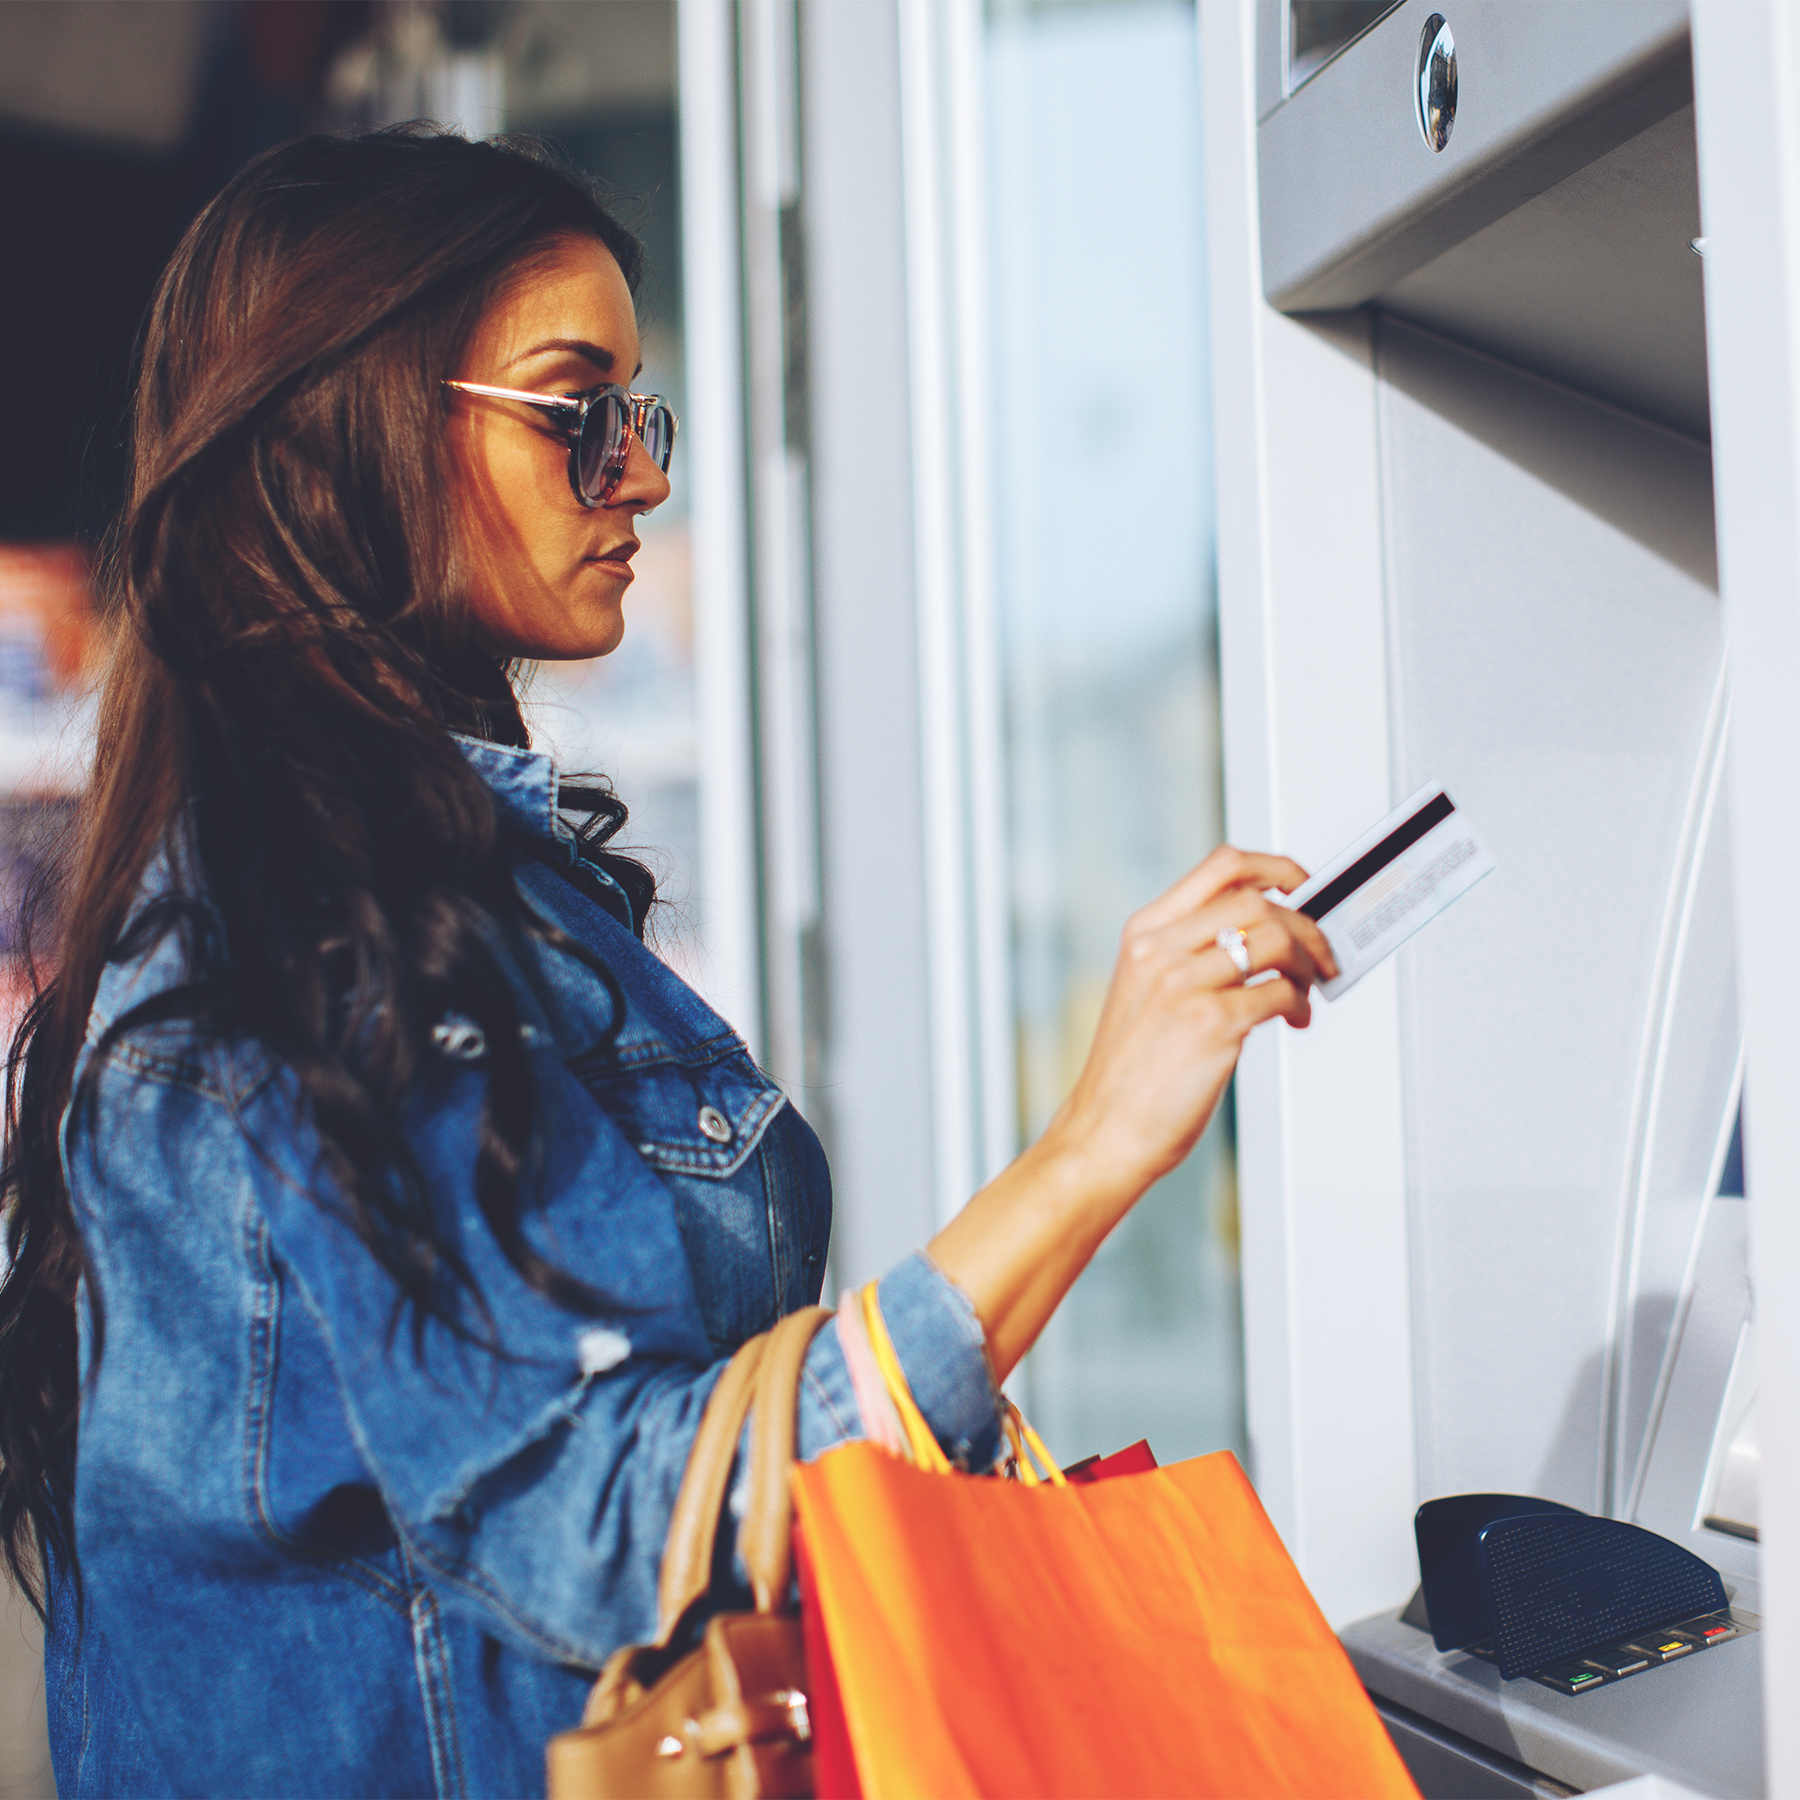 woman at atm holding debit card